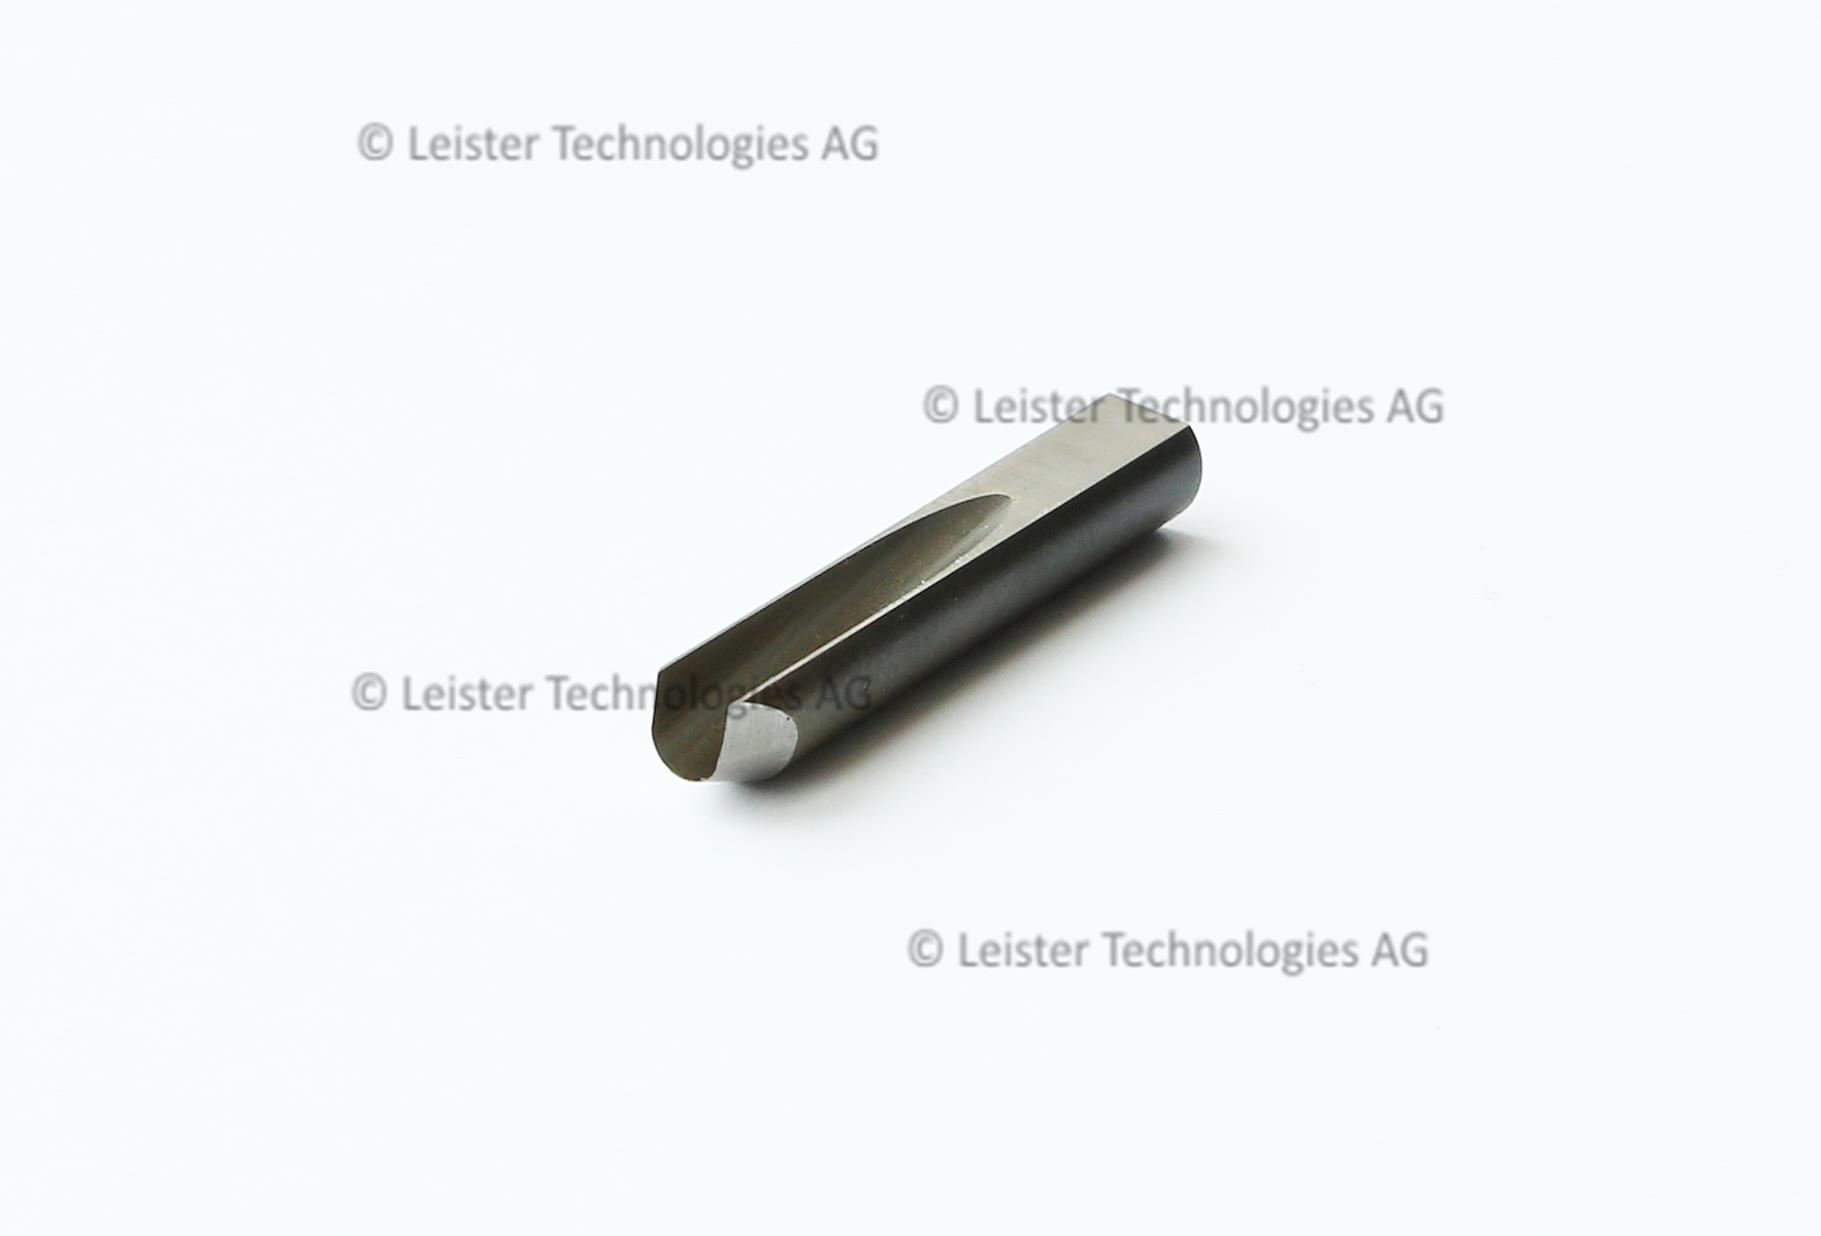 Spare blade for leister groovy hand gouging tool for flooring.